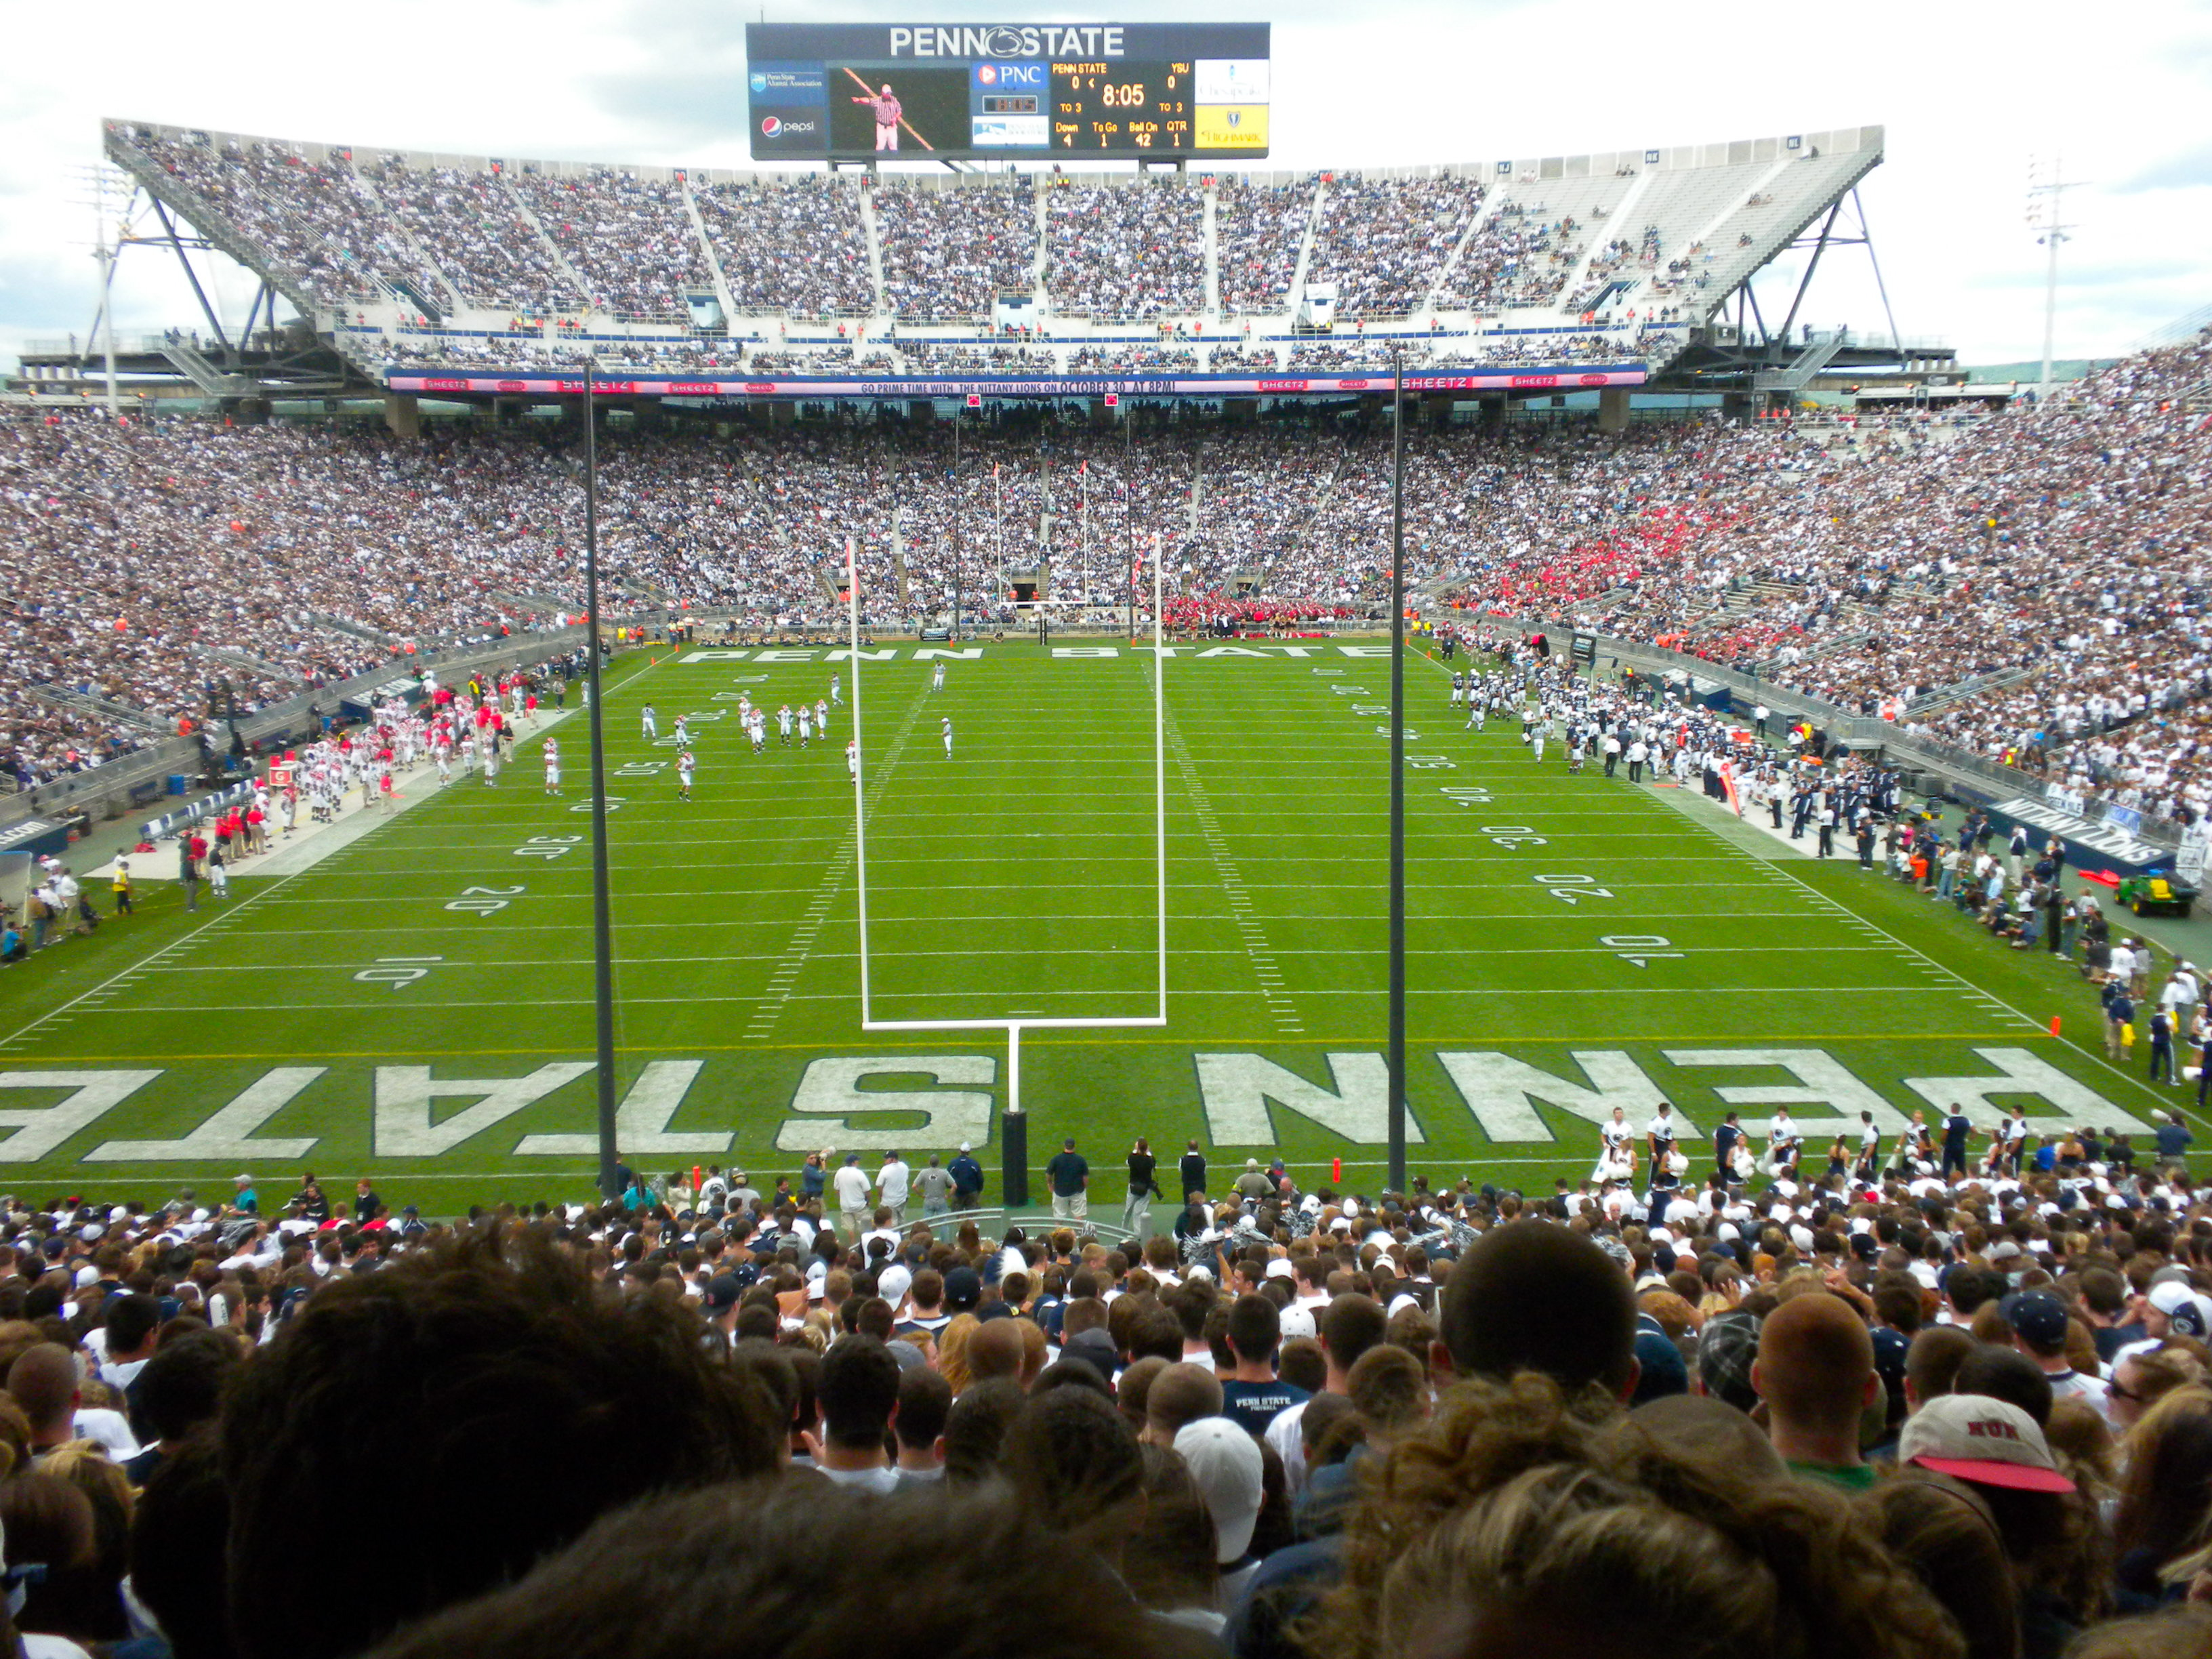 penn state football - photo #24